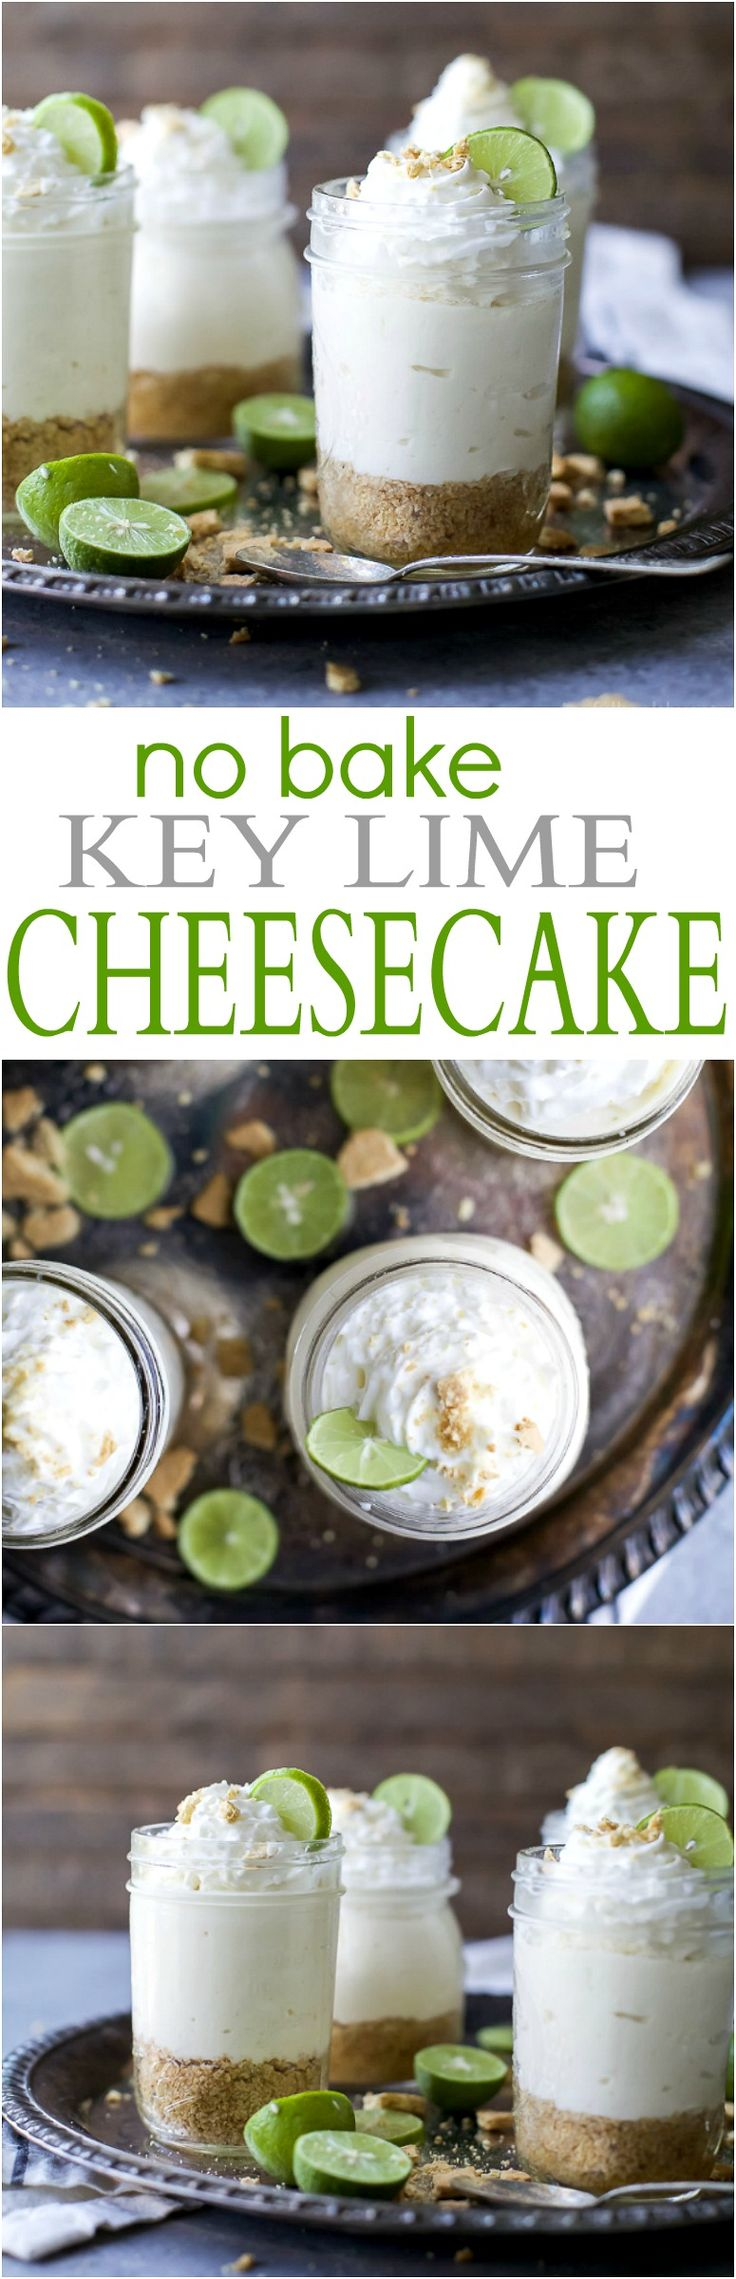 Easy No Bake Key Lime Cheesecake made healthy by using greek yogurt. A perfect light summer dessert to wow the crowd!